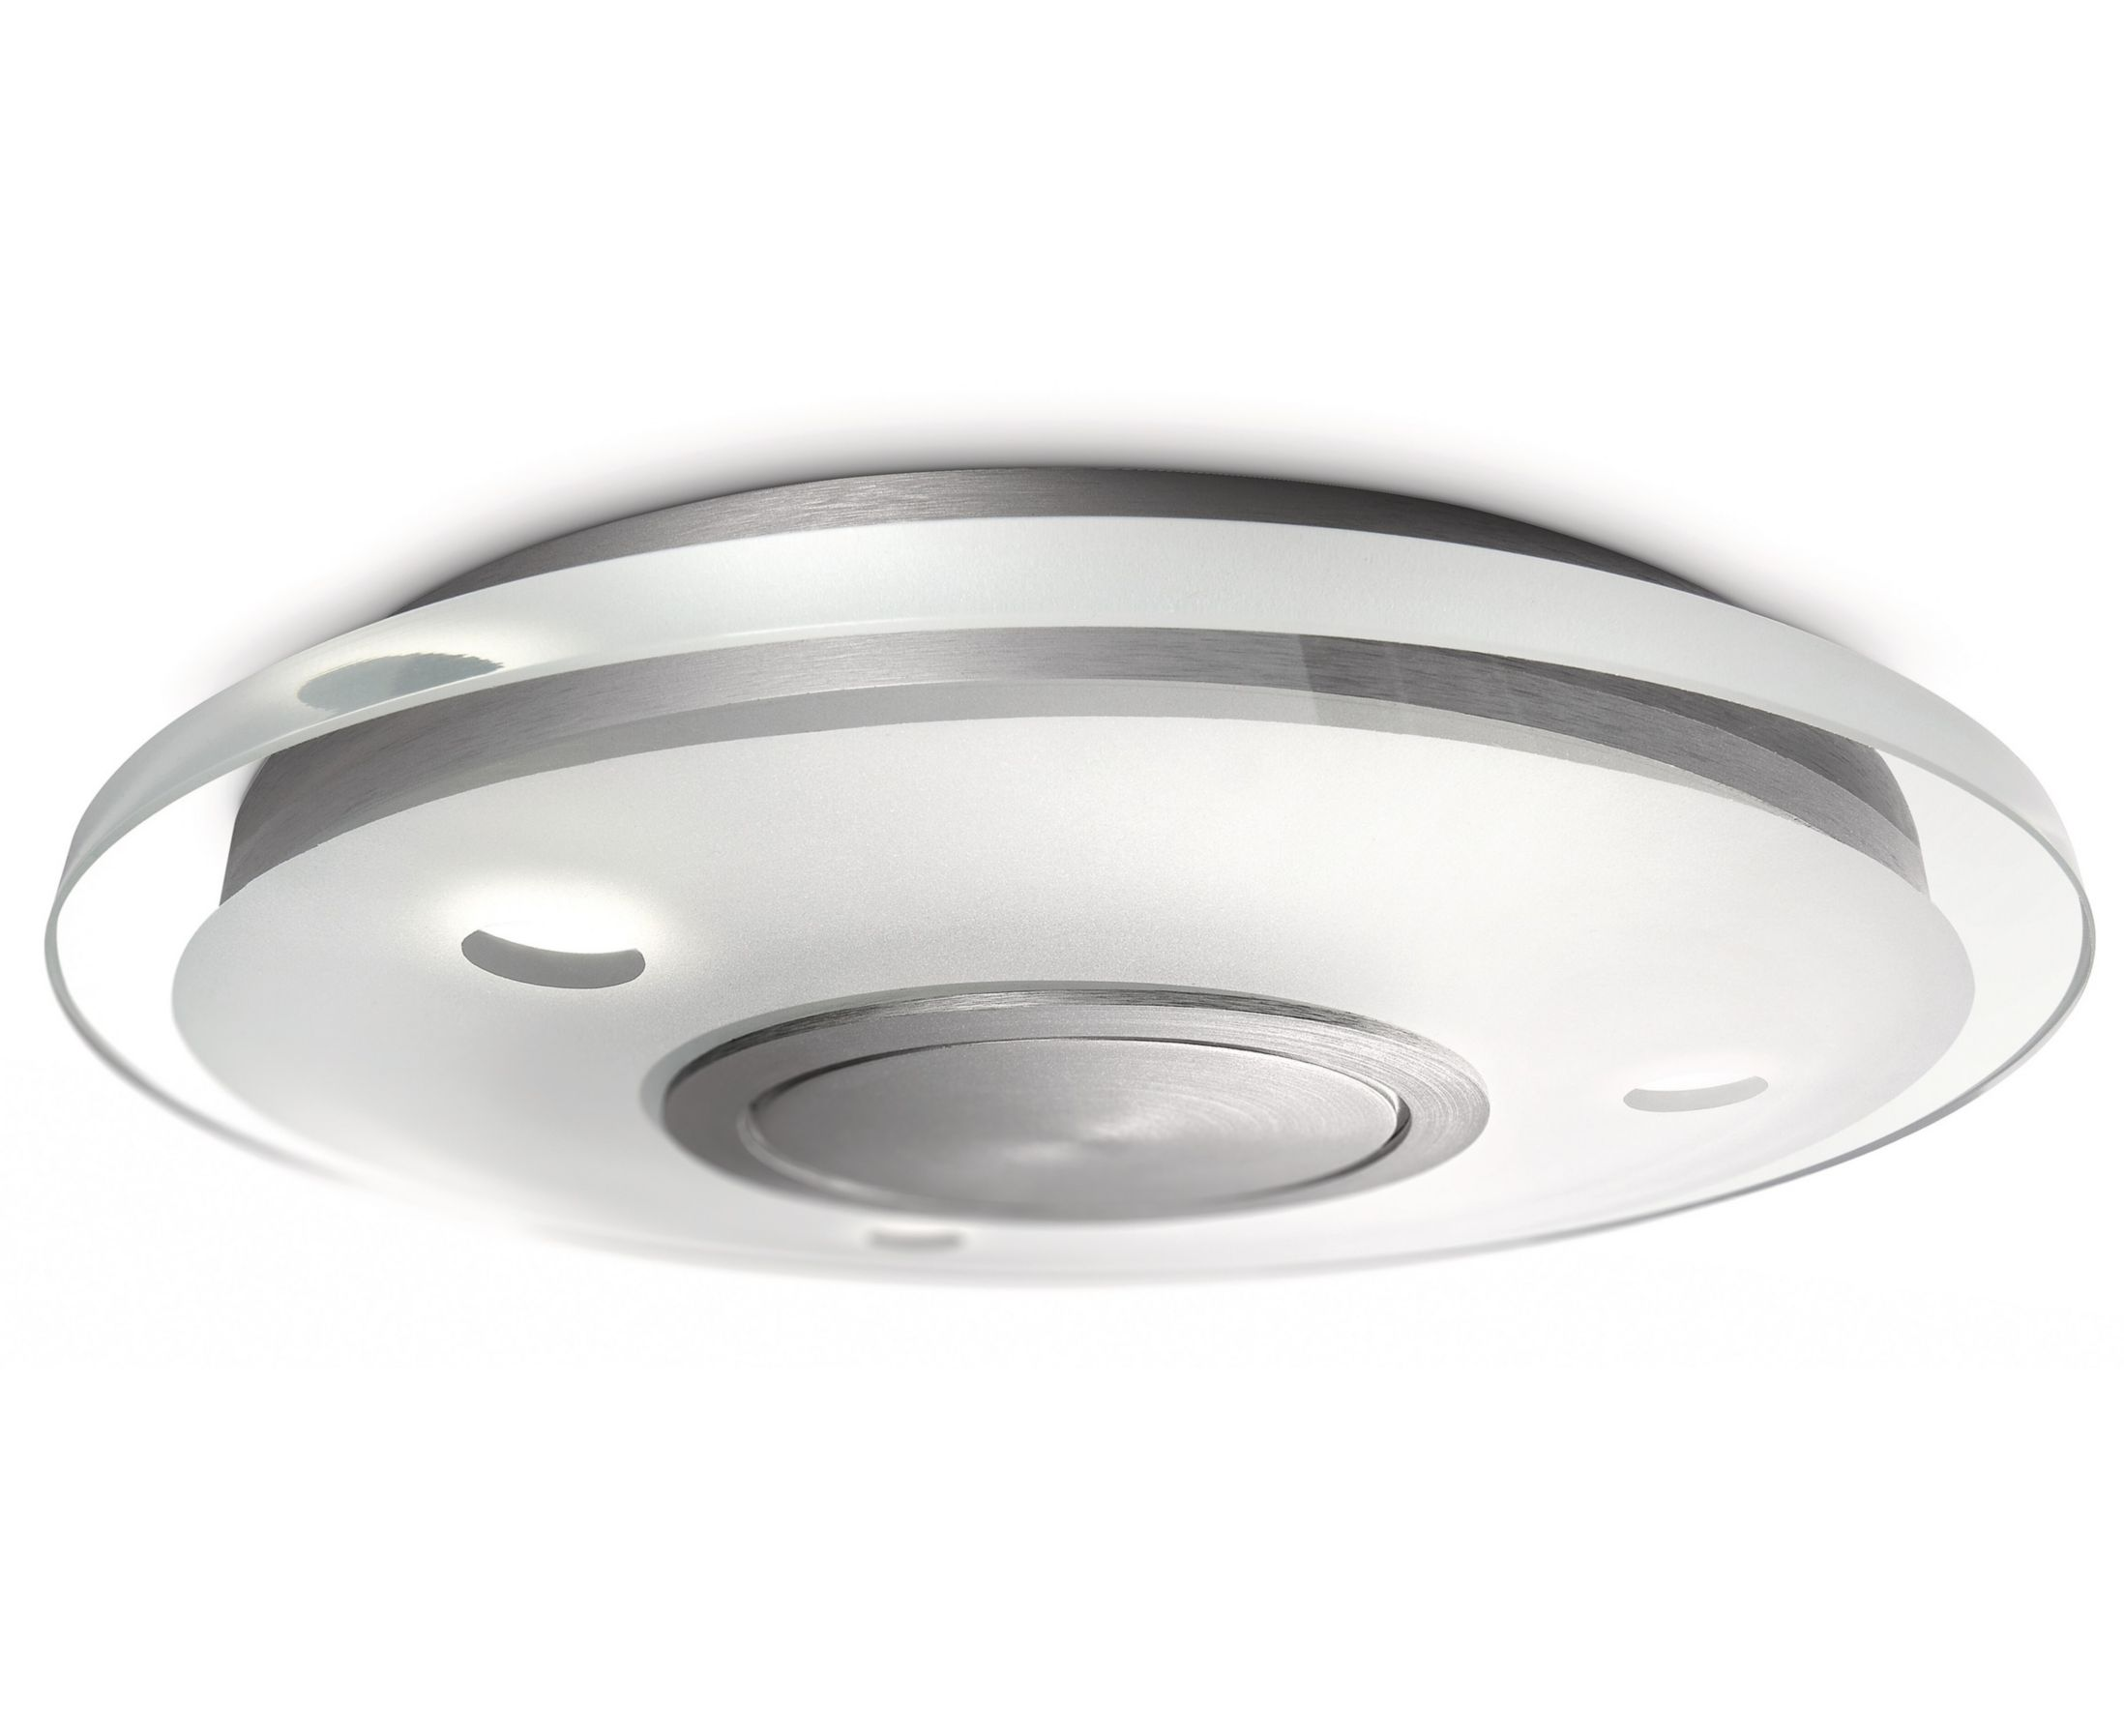 philips instyle vidro led rond lumi re plafond 3 x 7 5w led aluminium ebay. Black Bedroom Furniture Sets. Home Design Ideas